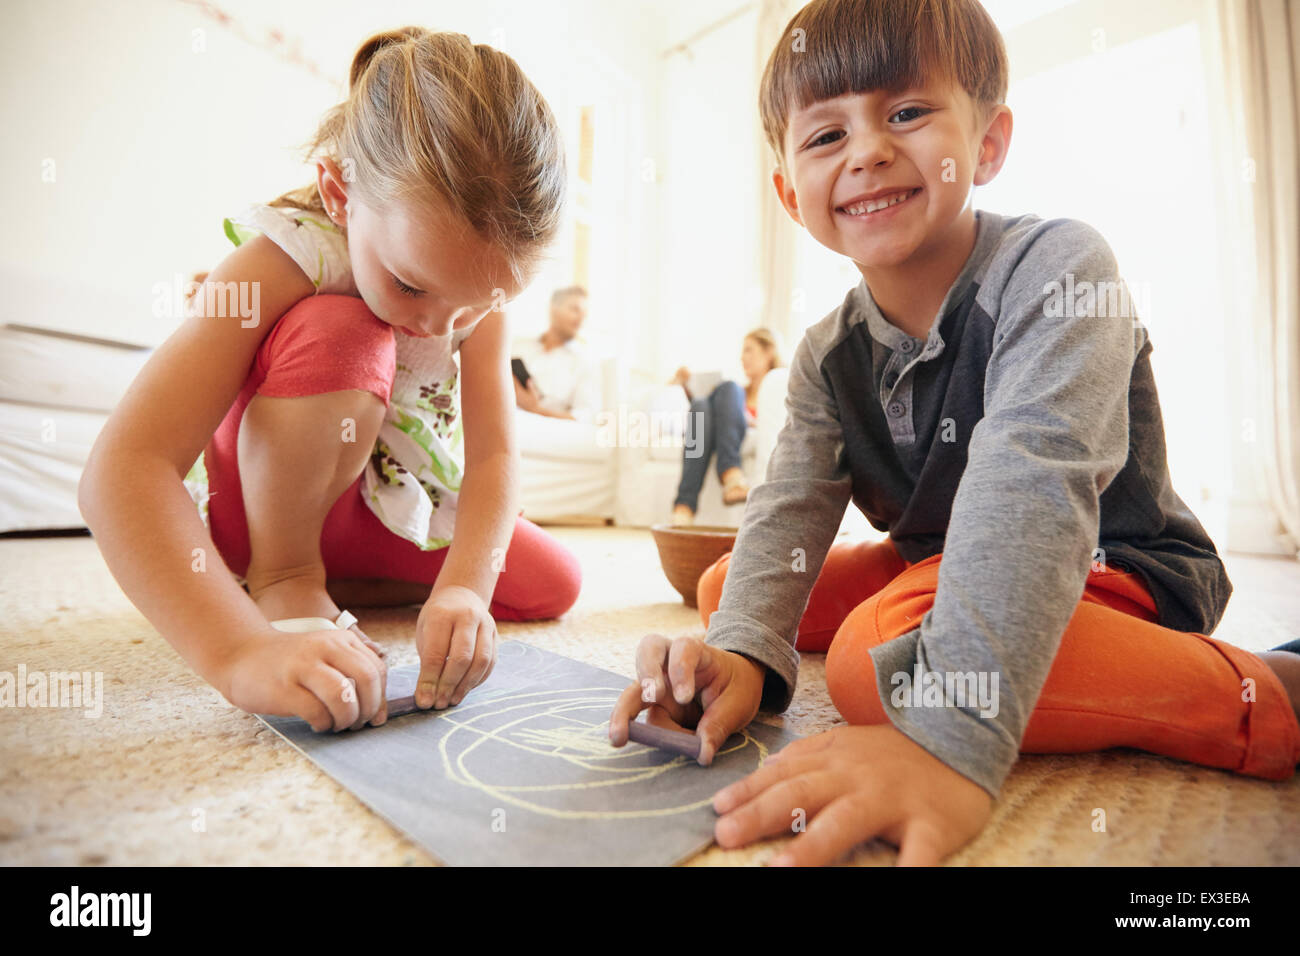 Indoor shot of happy little children drawing and coloring sitting on floor with parents in background at home - Stock Image